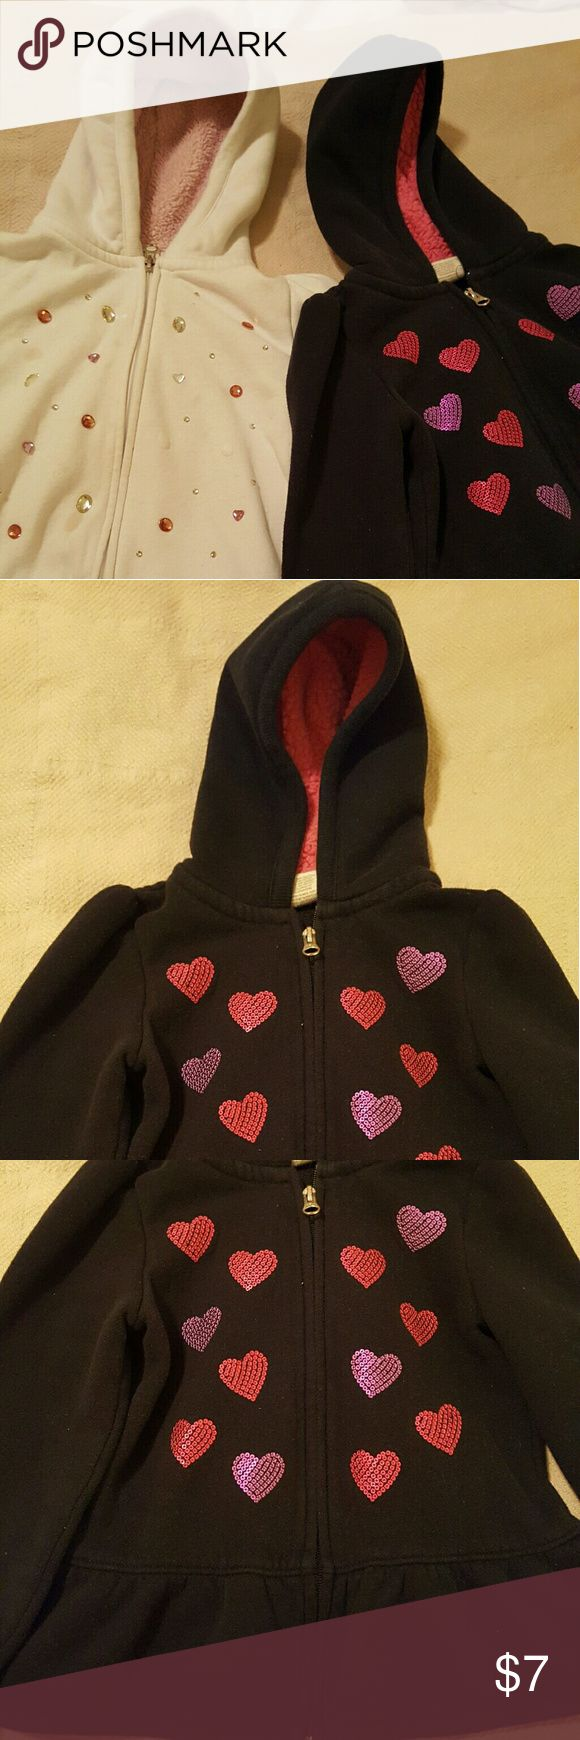 Children's size 5 and 6 zip up hoodies Children's size 5 and 6 zip up hoodies, Sonoma black and white sweater/jackets, black has hot pink and purple sequin hearts, white one has pink and diamond oval and heart rhinestones. As seen in pictures the white hoodies has some stains that I could not get out without having to use something that may have harmed the material. Sonoma Shirts & Tops Sweatshirts & Hoodies